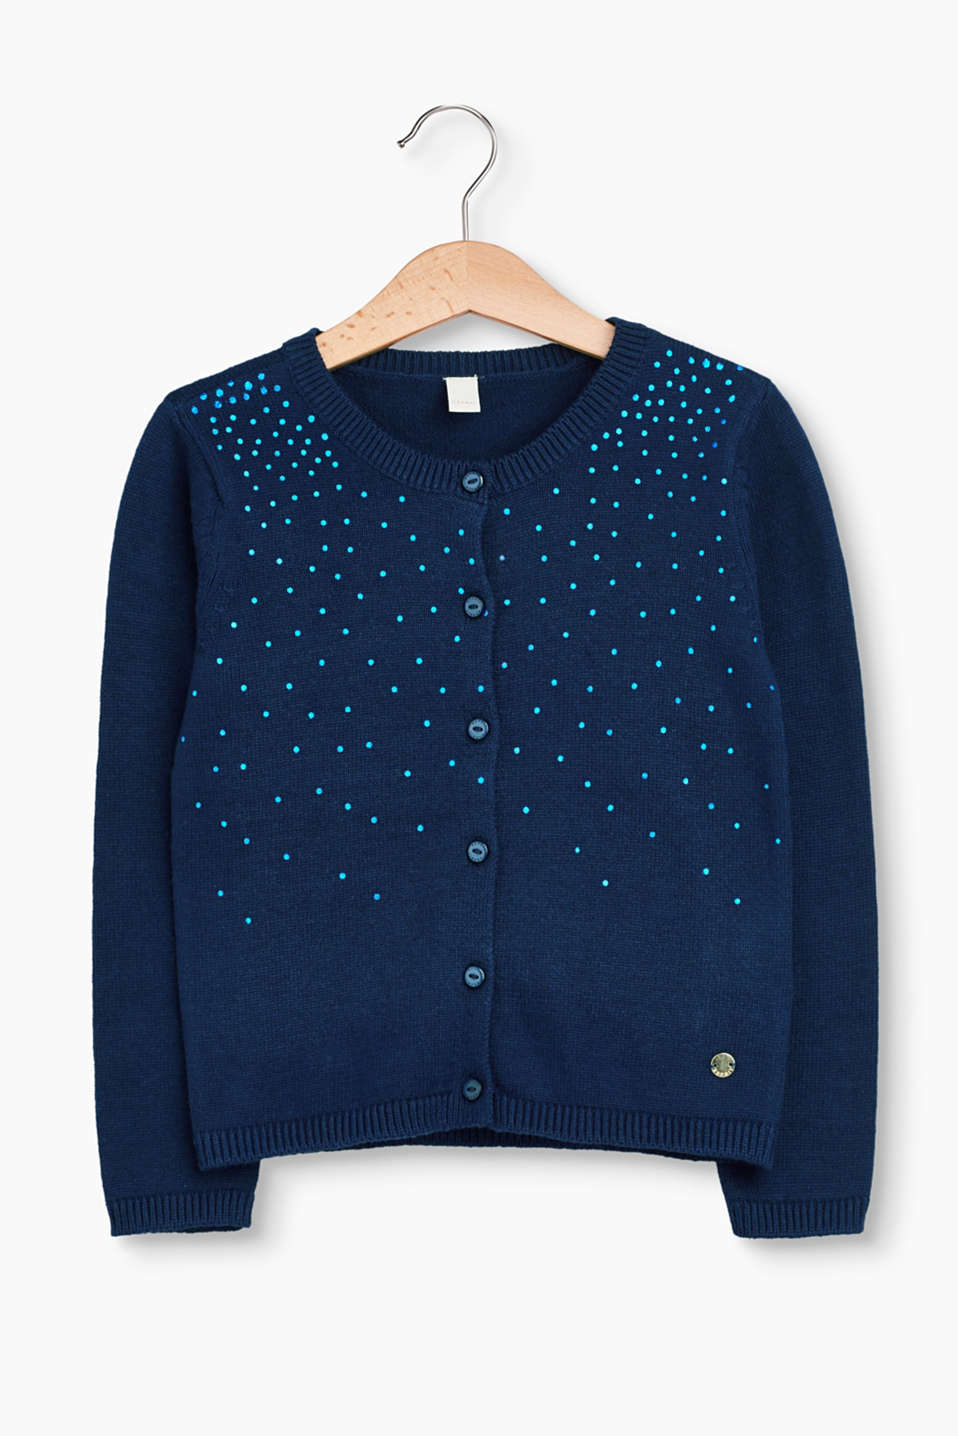 Esprit - Cardigan with a shiny print, 100% cotton